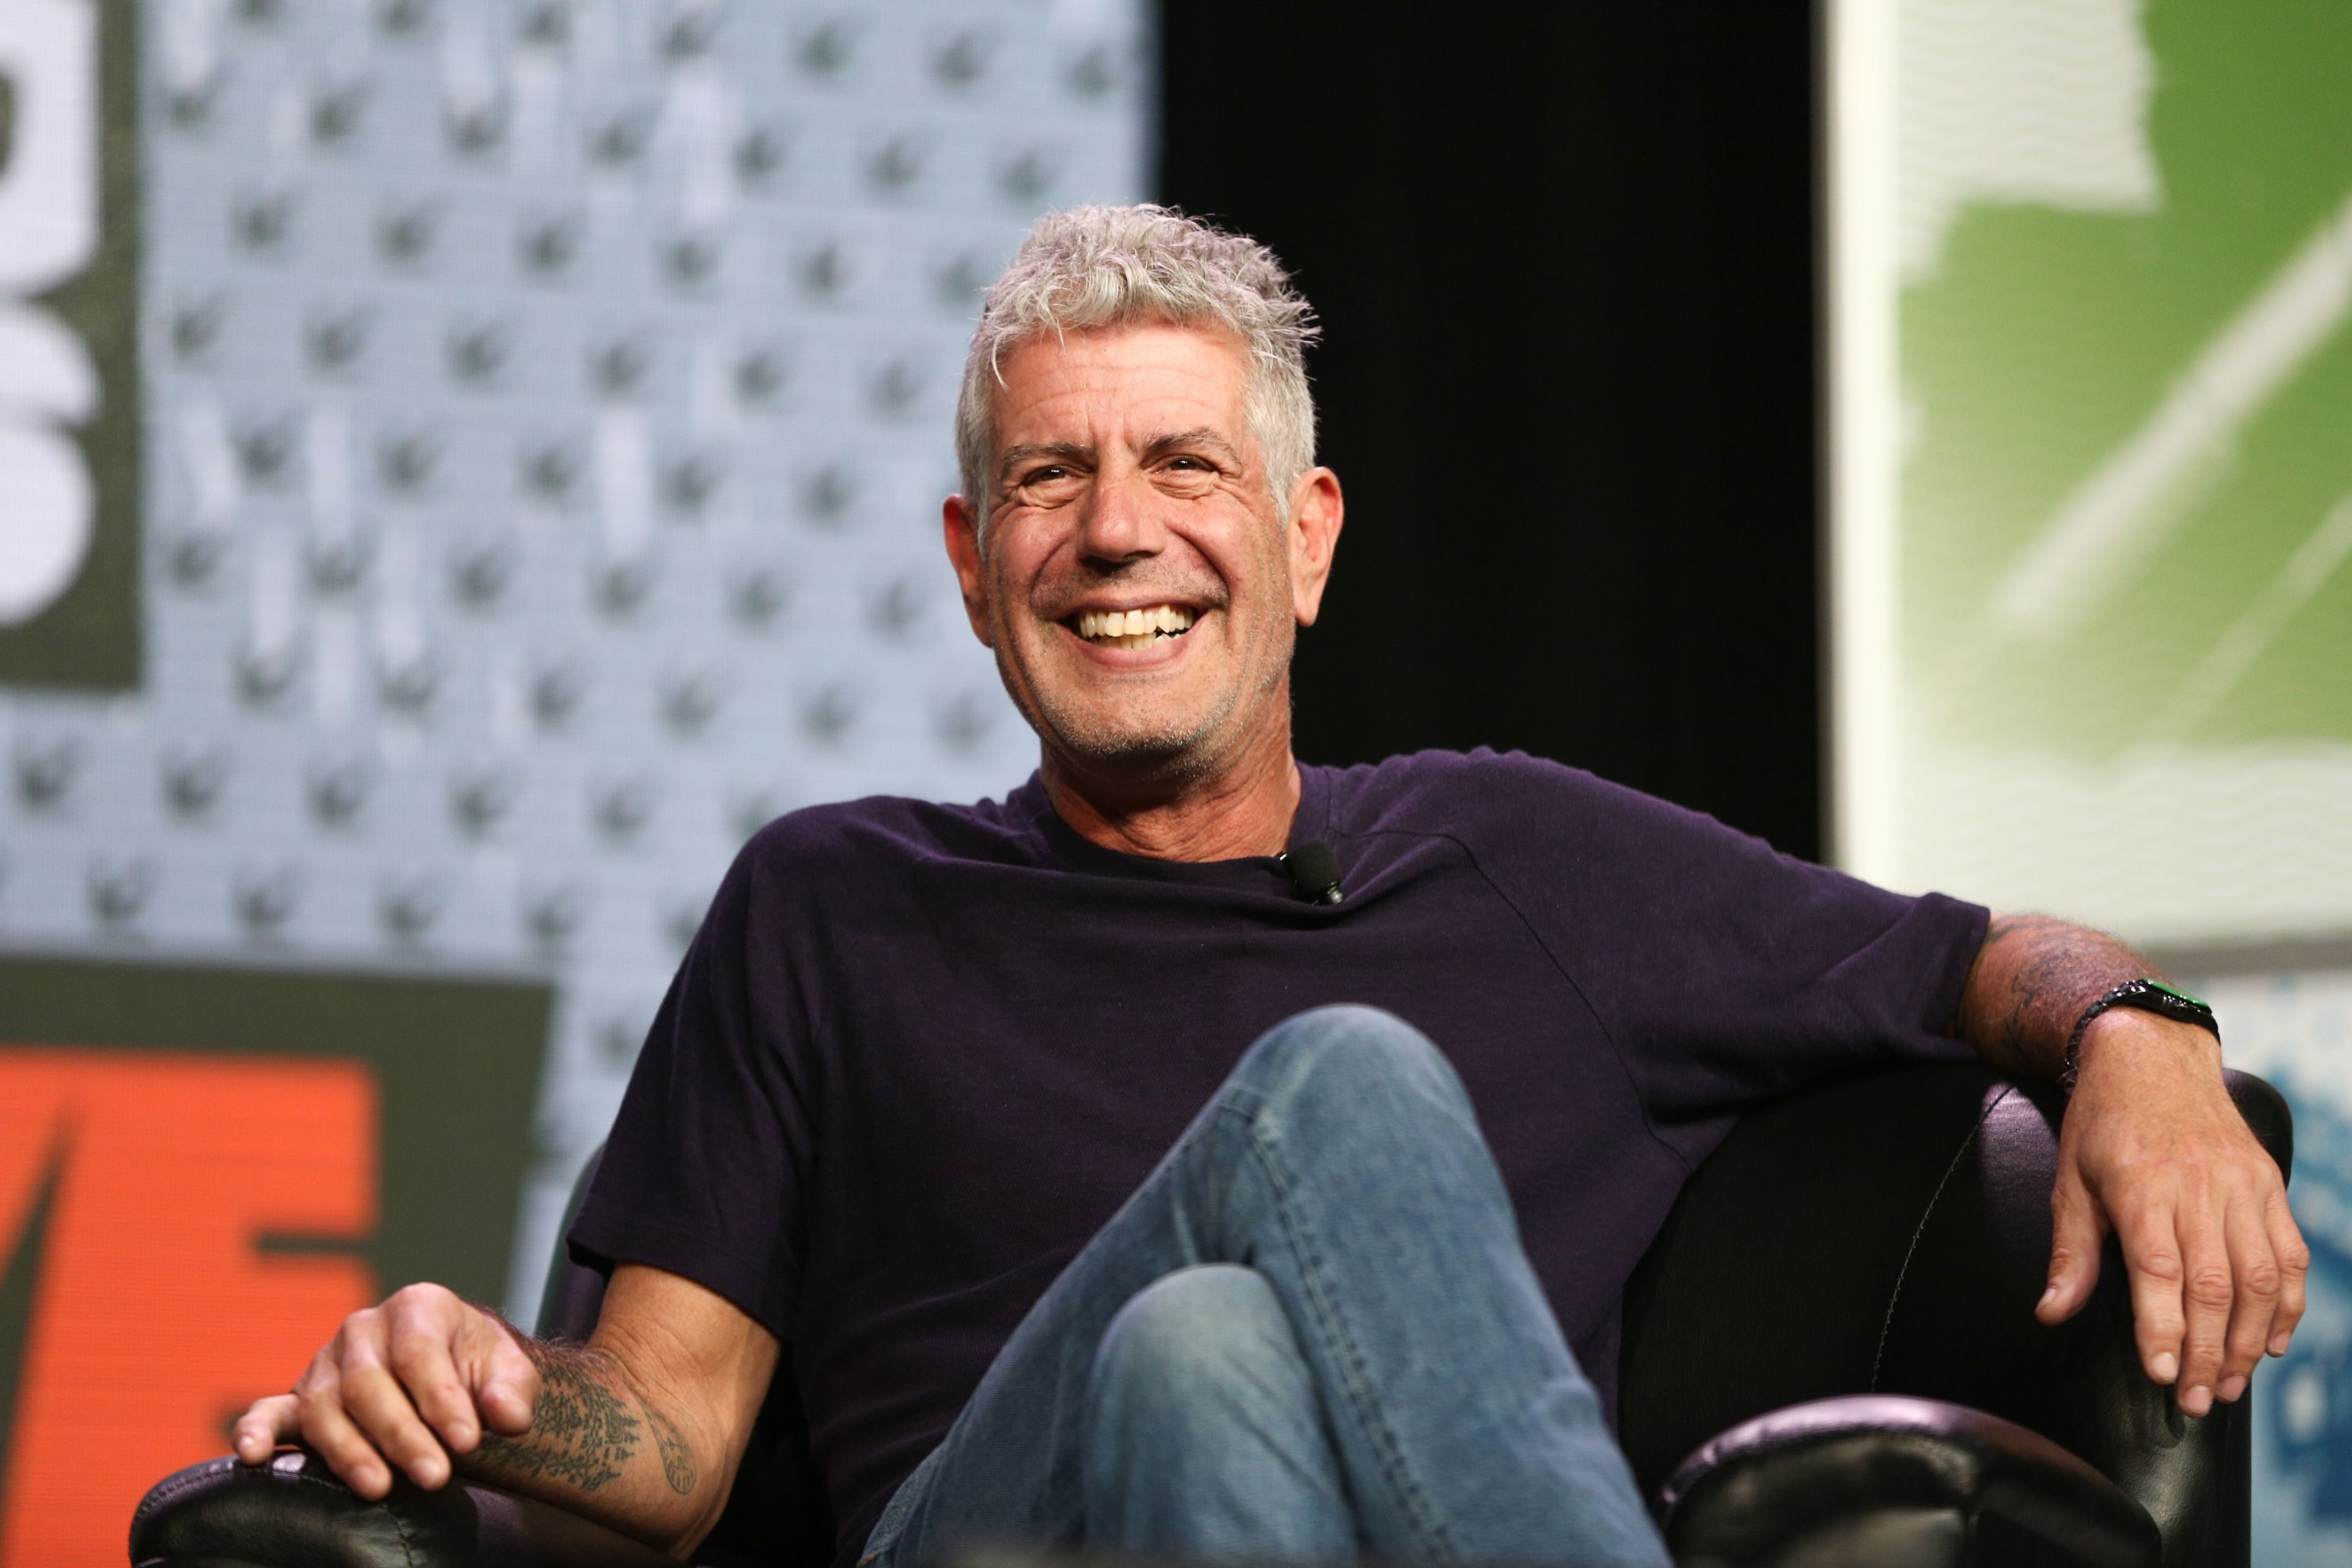 Why Anthony Bourdain Refused to Eat Airplane Food